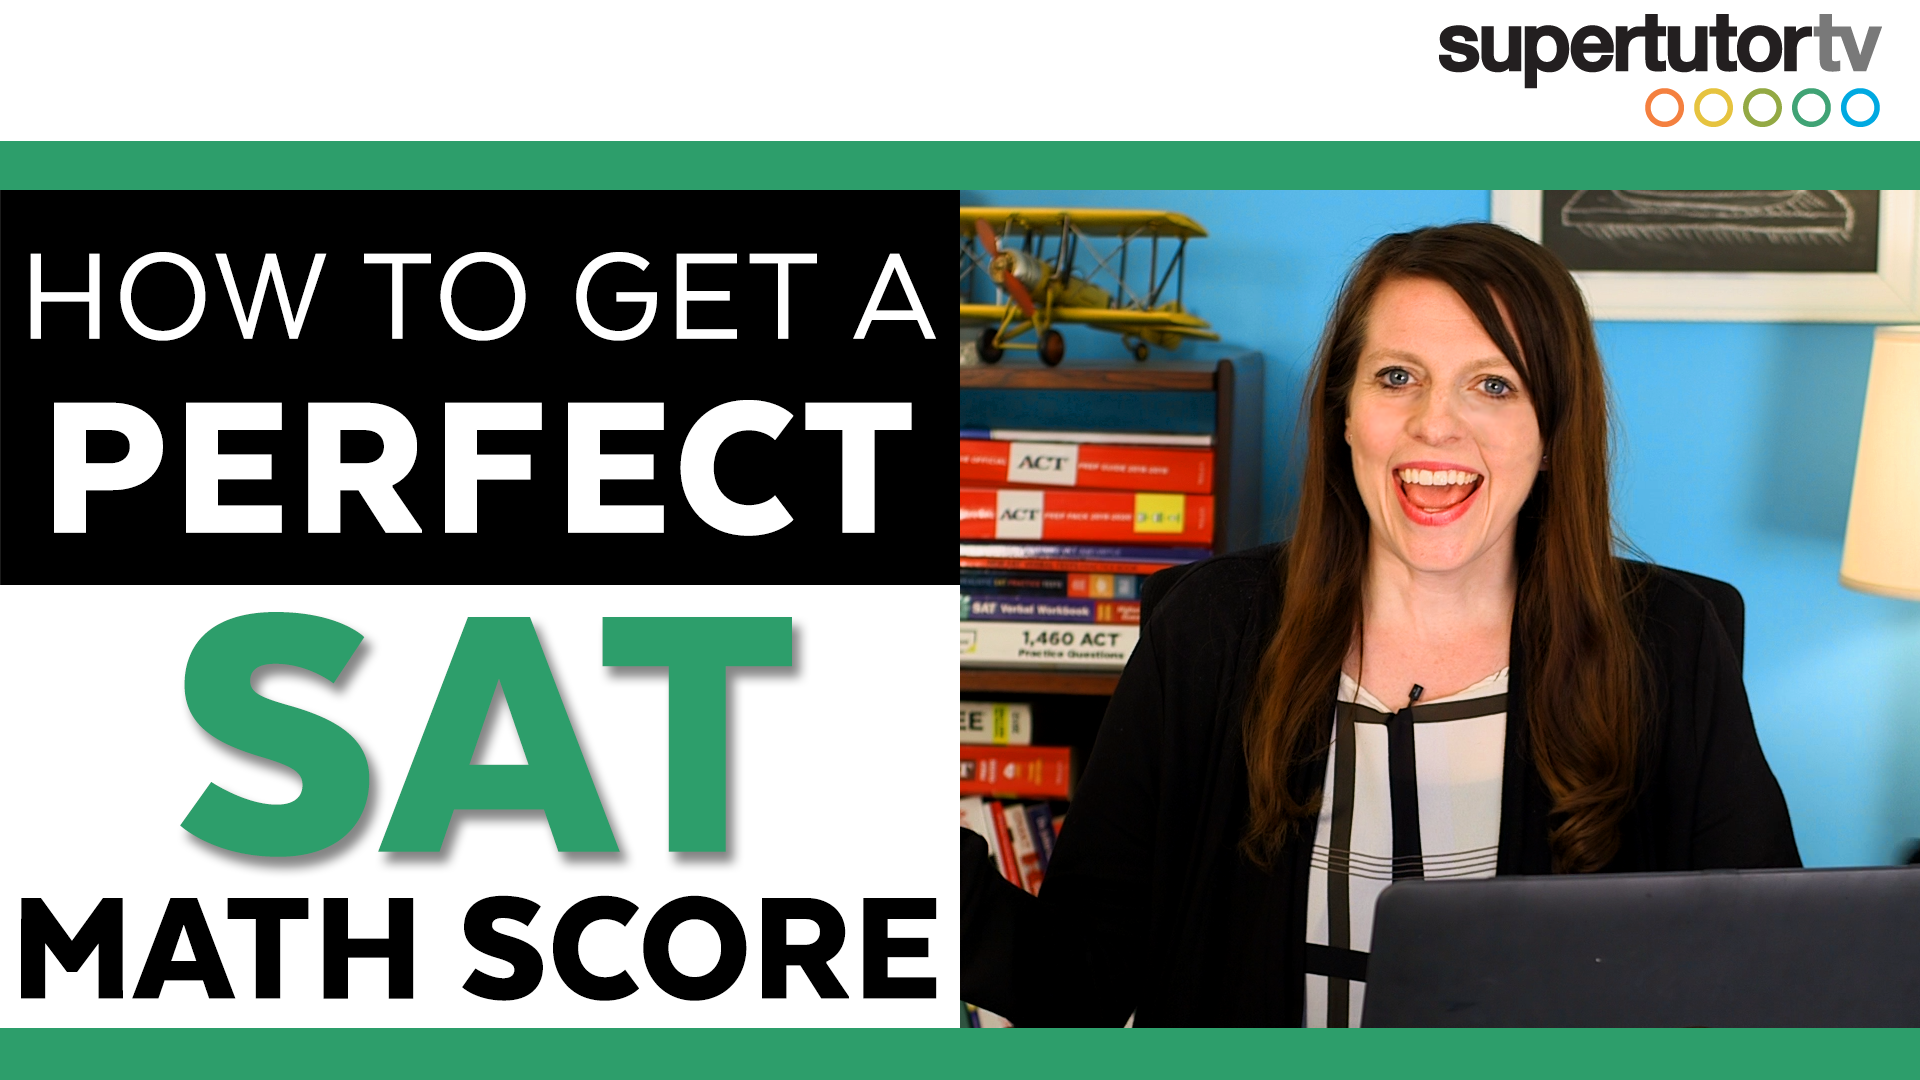 How to Cheat on the SAT: 5 Ways People Have | SupertutorTV